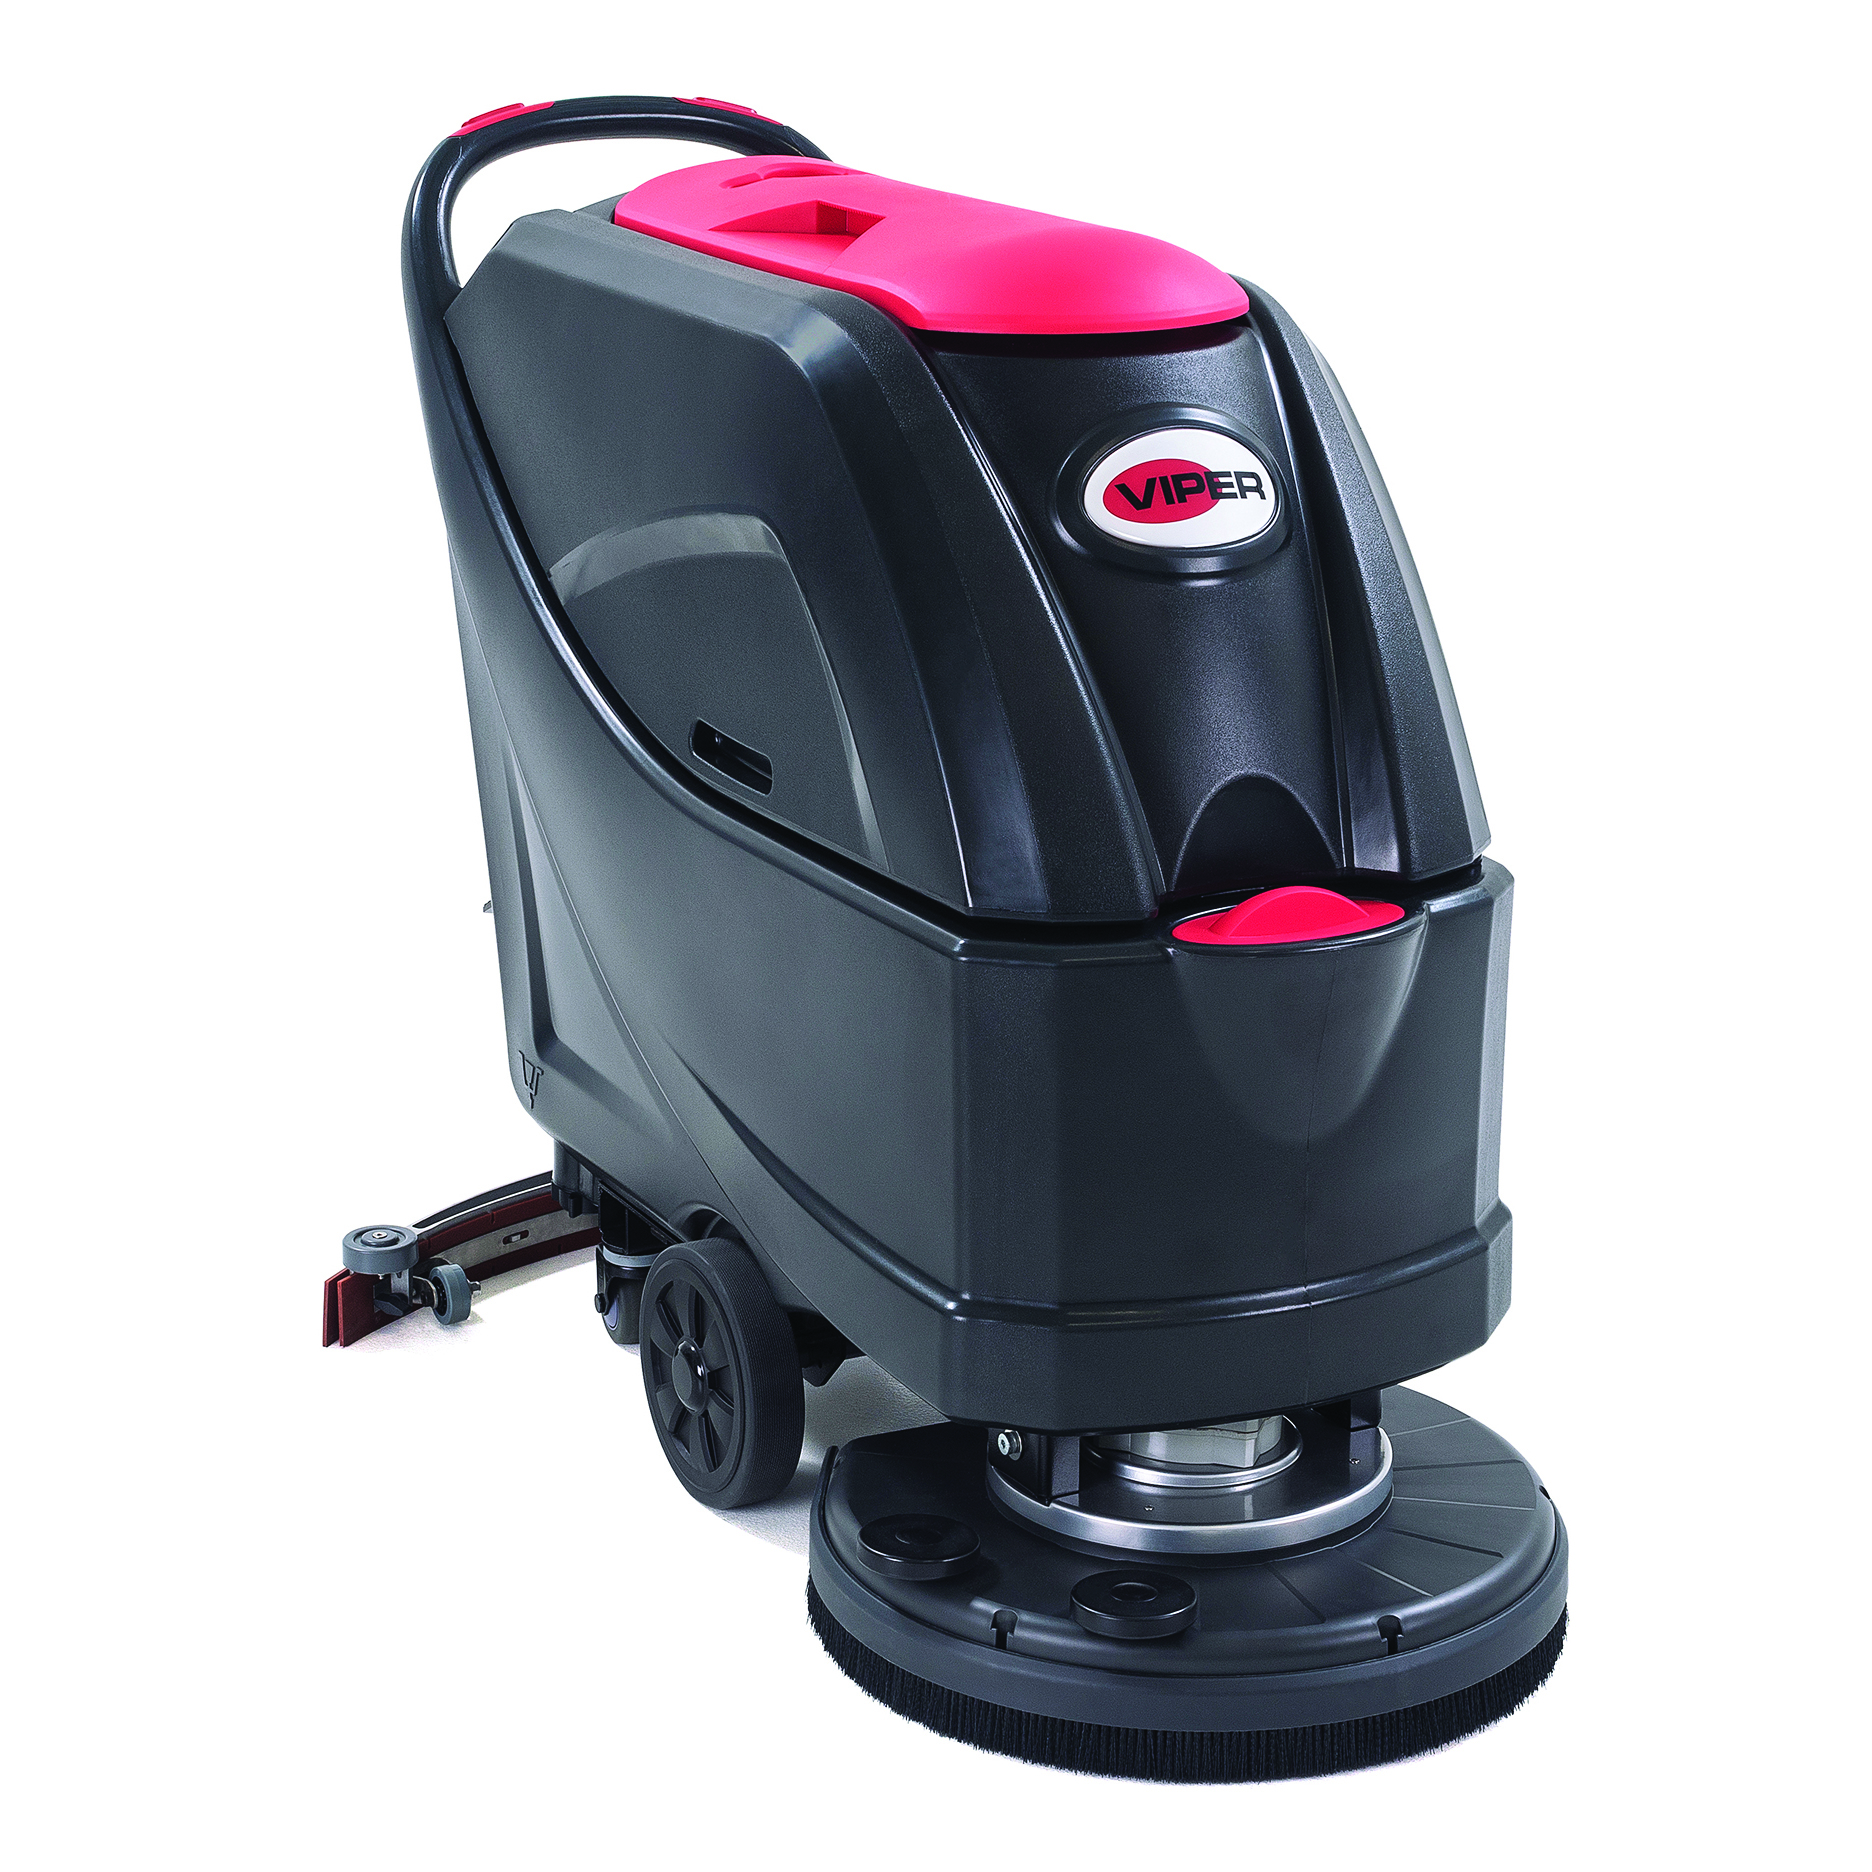 "AS5160 Viper 20"" auto scrubber 16-gal, pad-assist drive, pad"